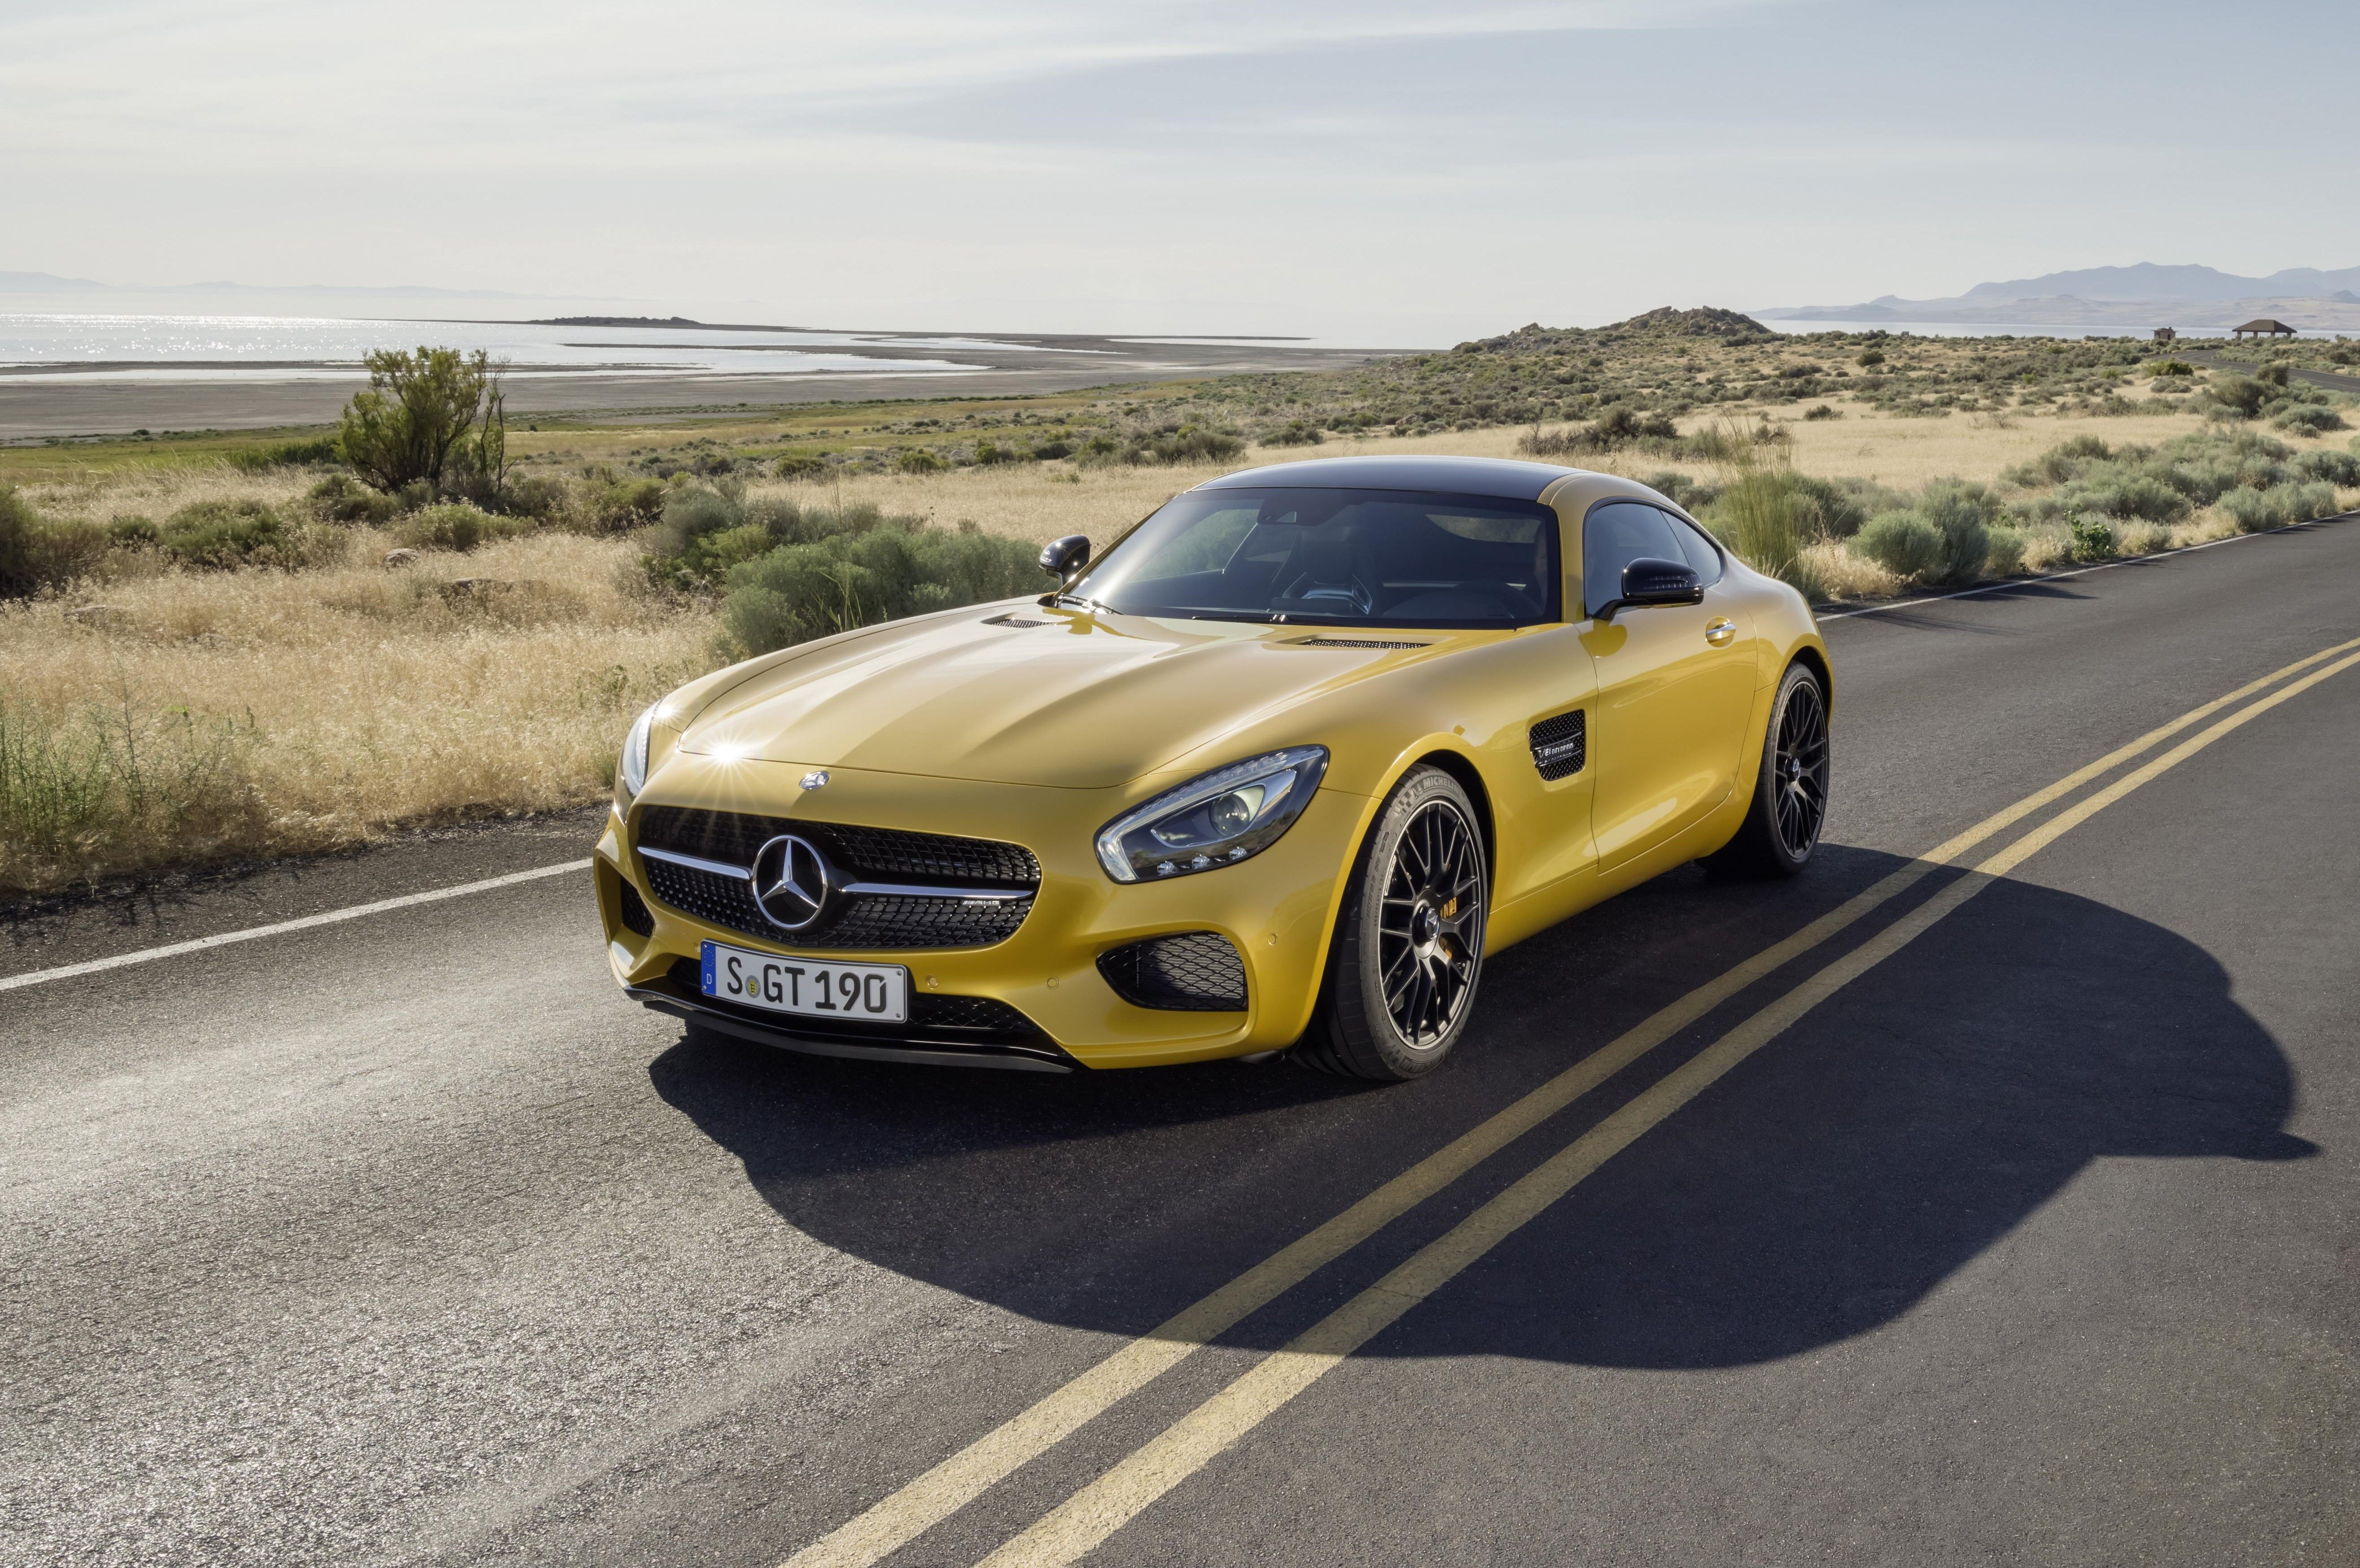 The new Mercedes-AMG GT: Now it's your turn - http://www.motrface.com/the-new-mercedes-amg-gt-now-its-your-turn/